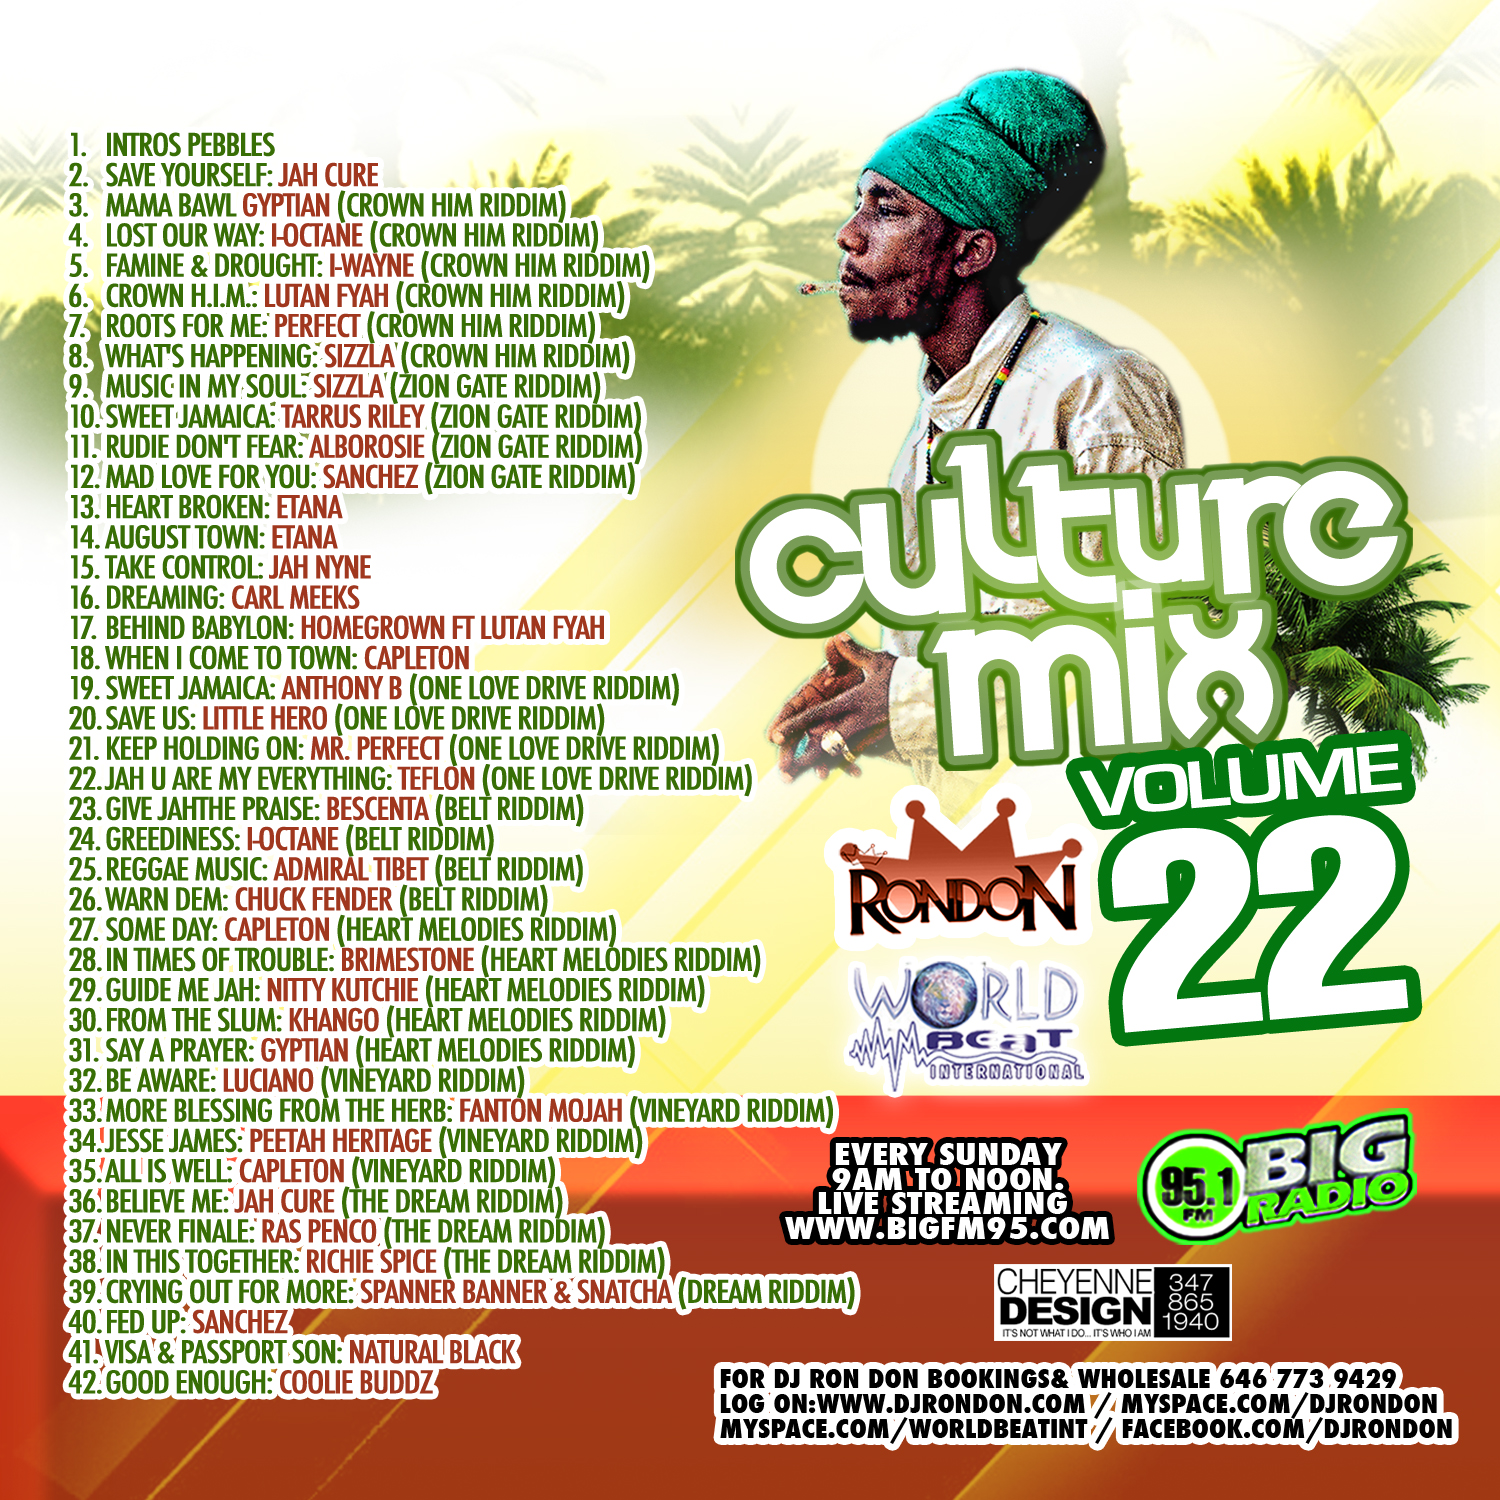 CULTURE MIX REGGAE VOL. 22 (DOWNLOAD ONLY)